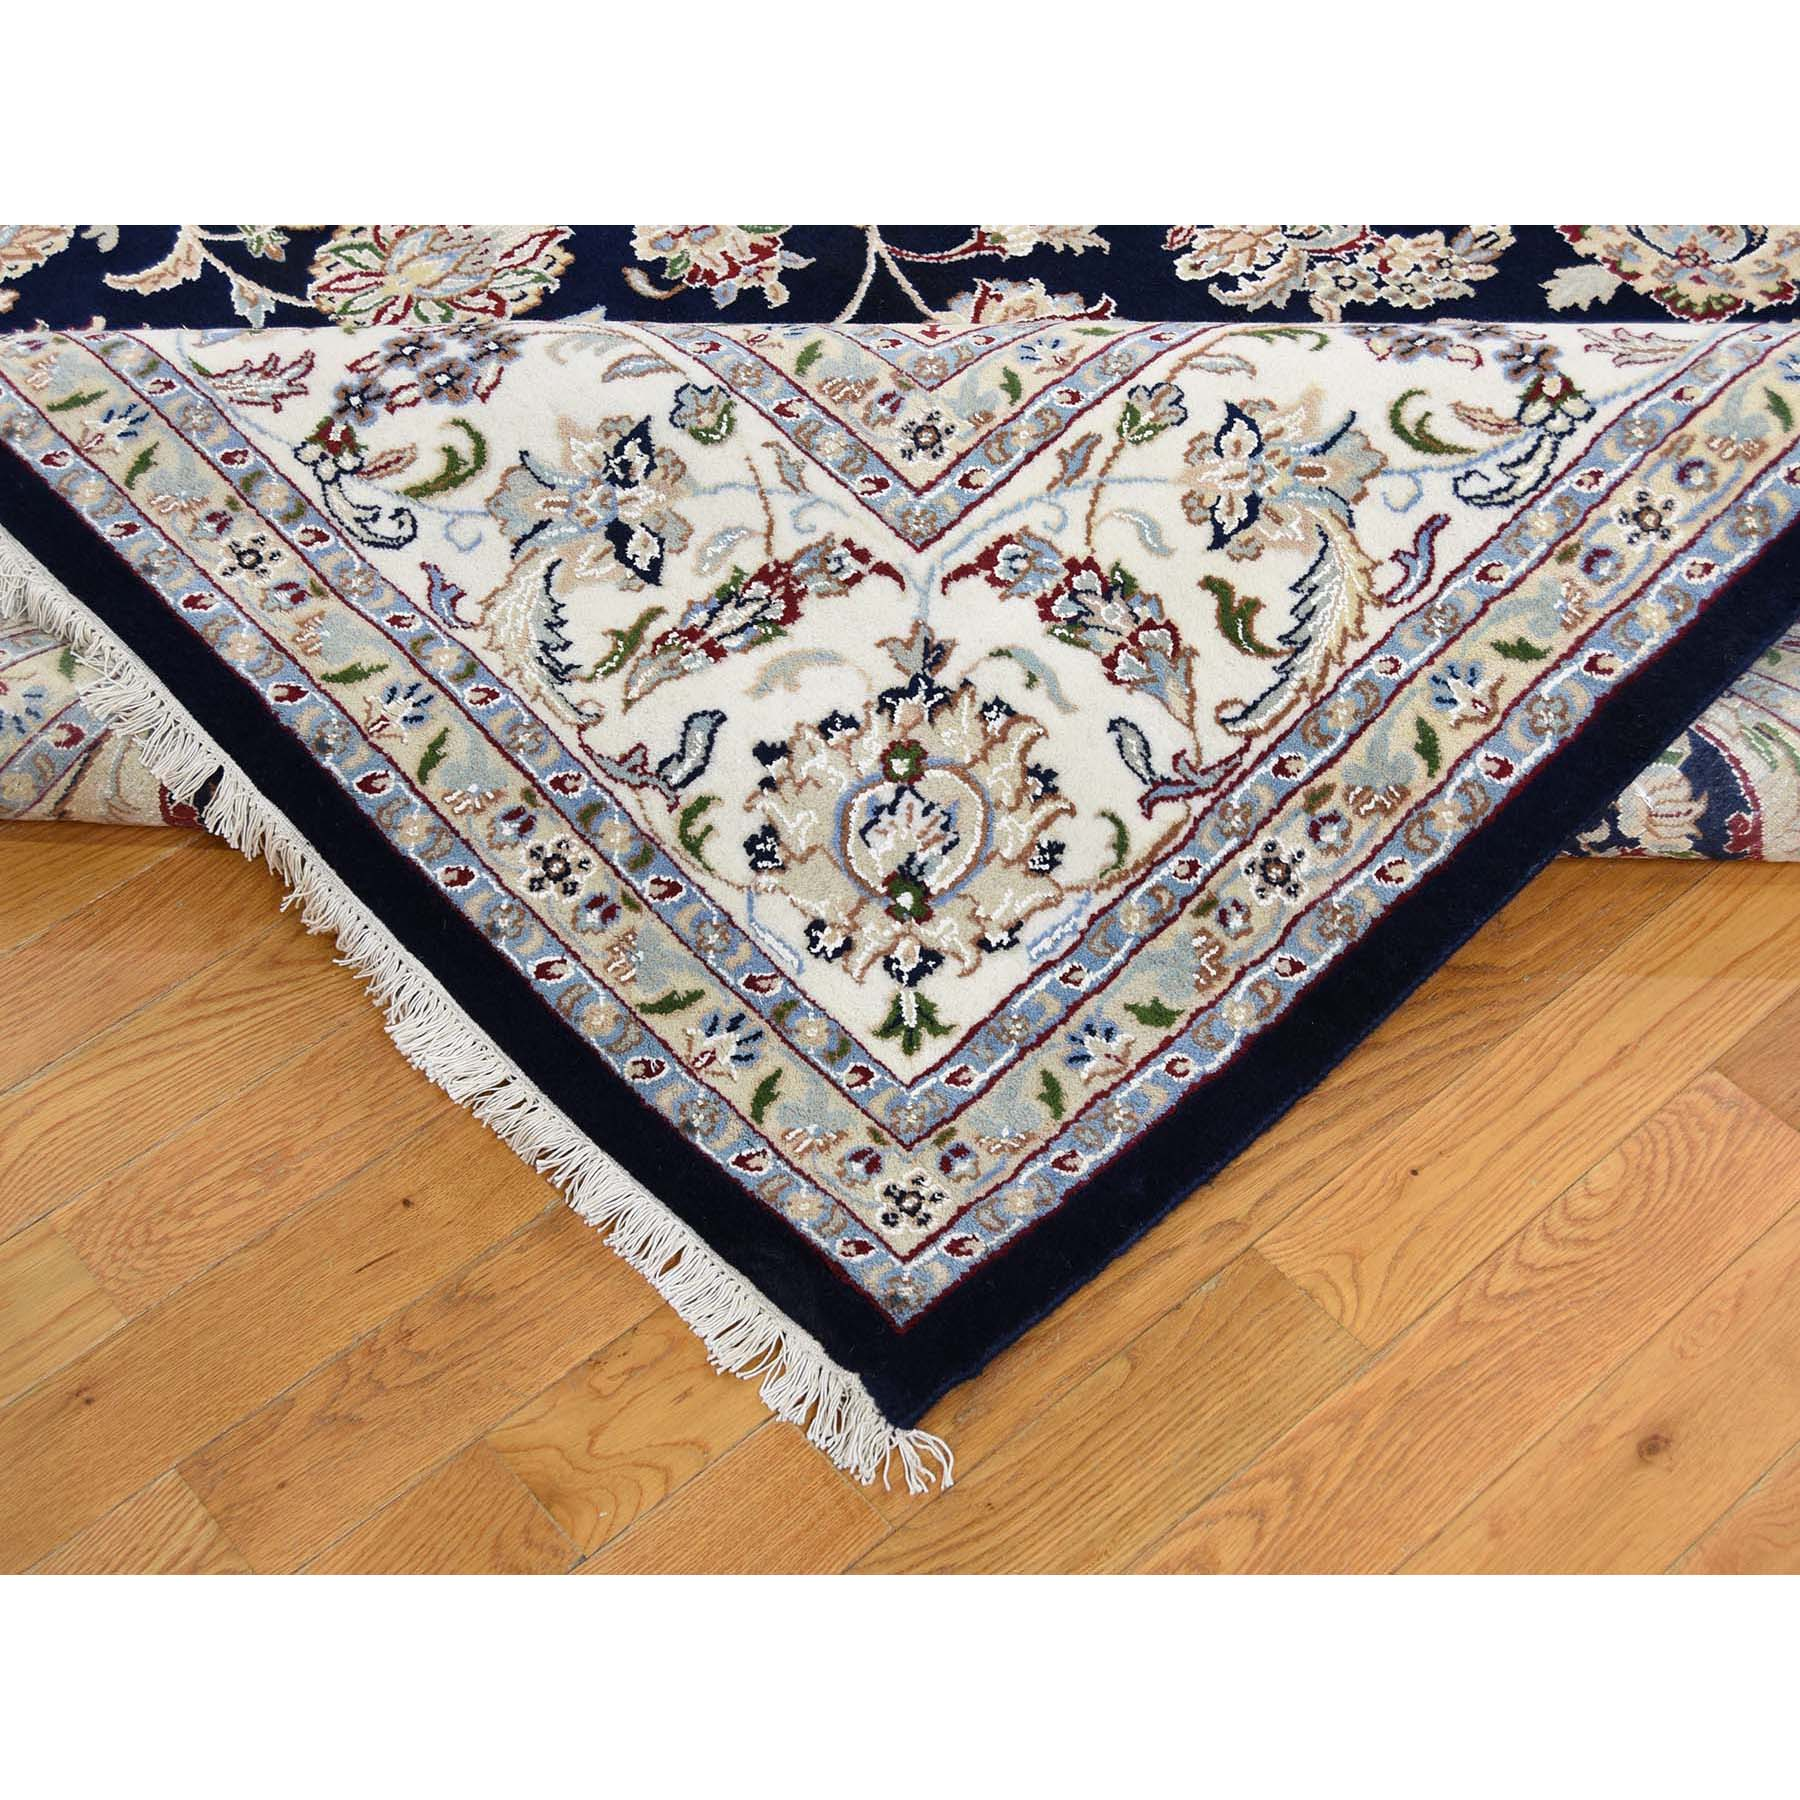 "9'8""x14'1"" Wool and Silk 250 KPSI Navy Blue Nain Hand Woven Oriental Rug"